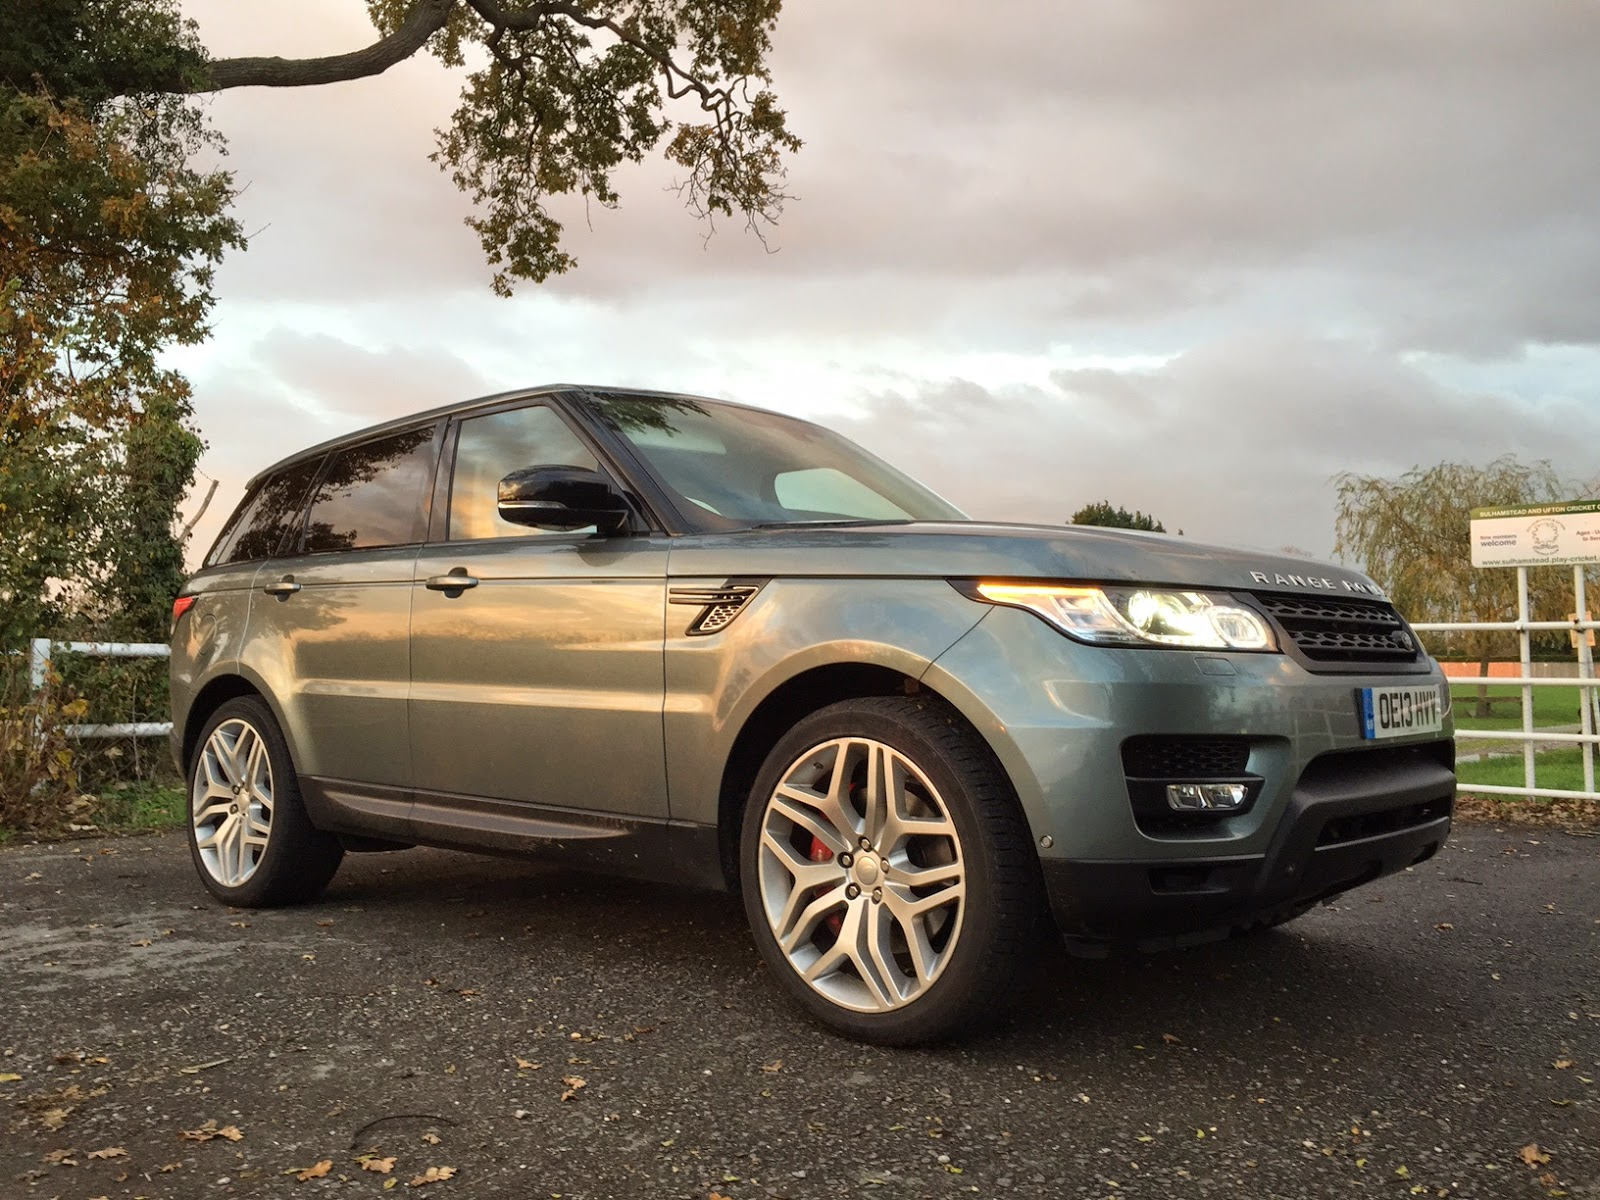 2014 range rover sport sdv6 first drive review the crittenden automotive library. Black Bedroom Furniture Sets. Home Design Ideas